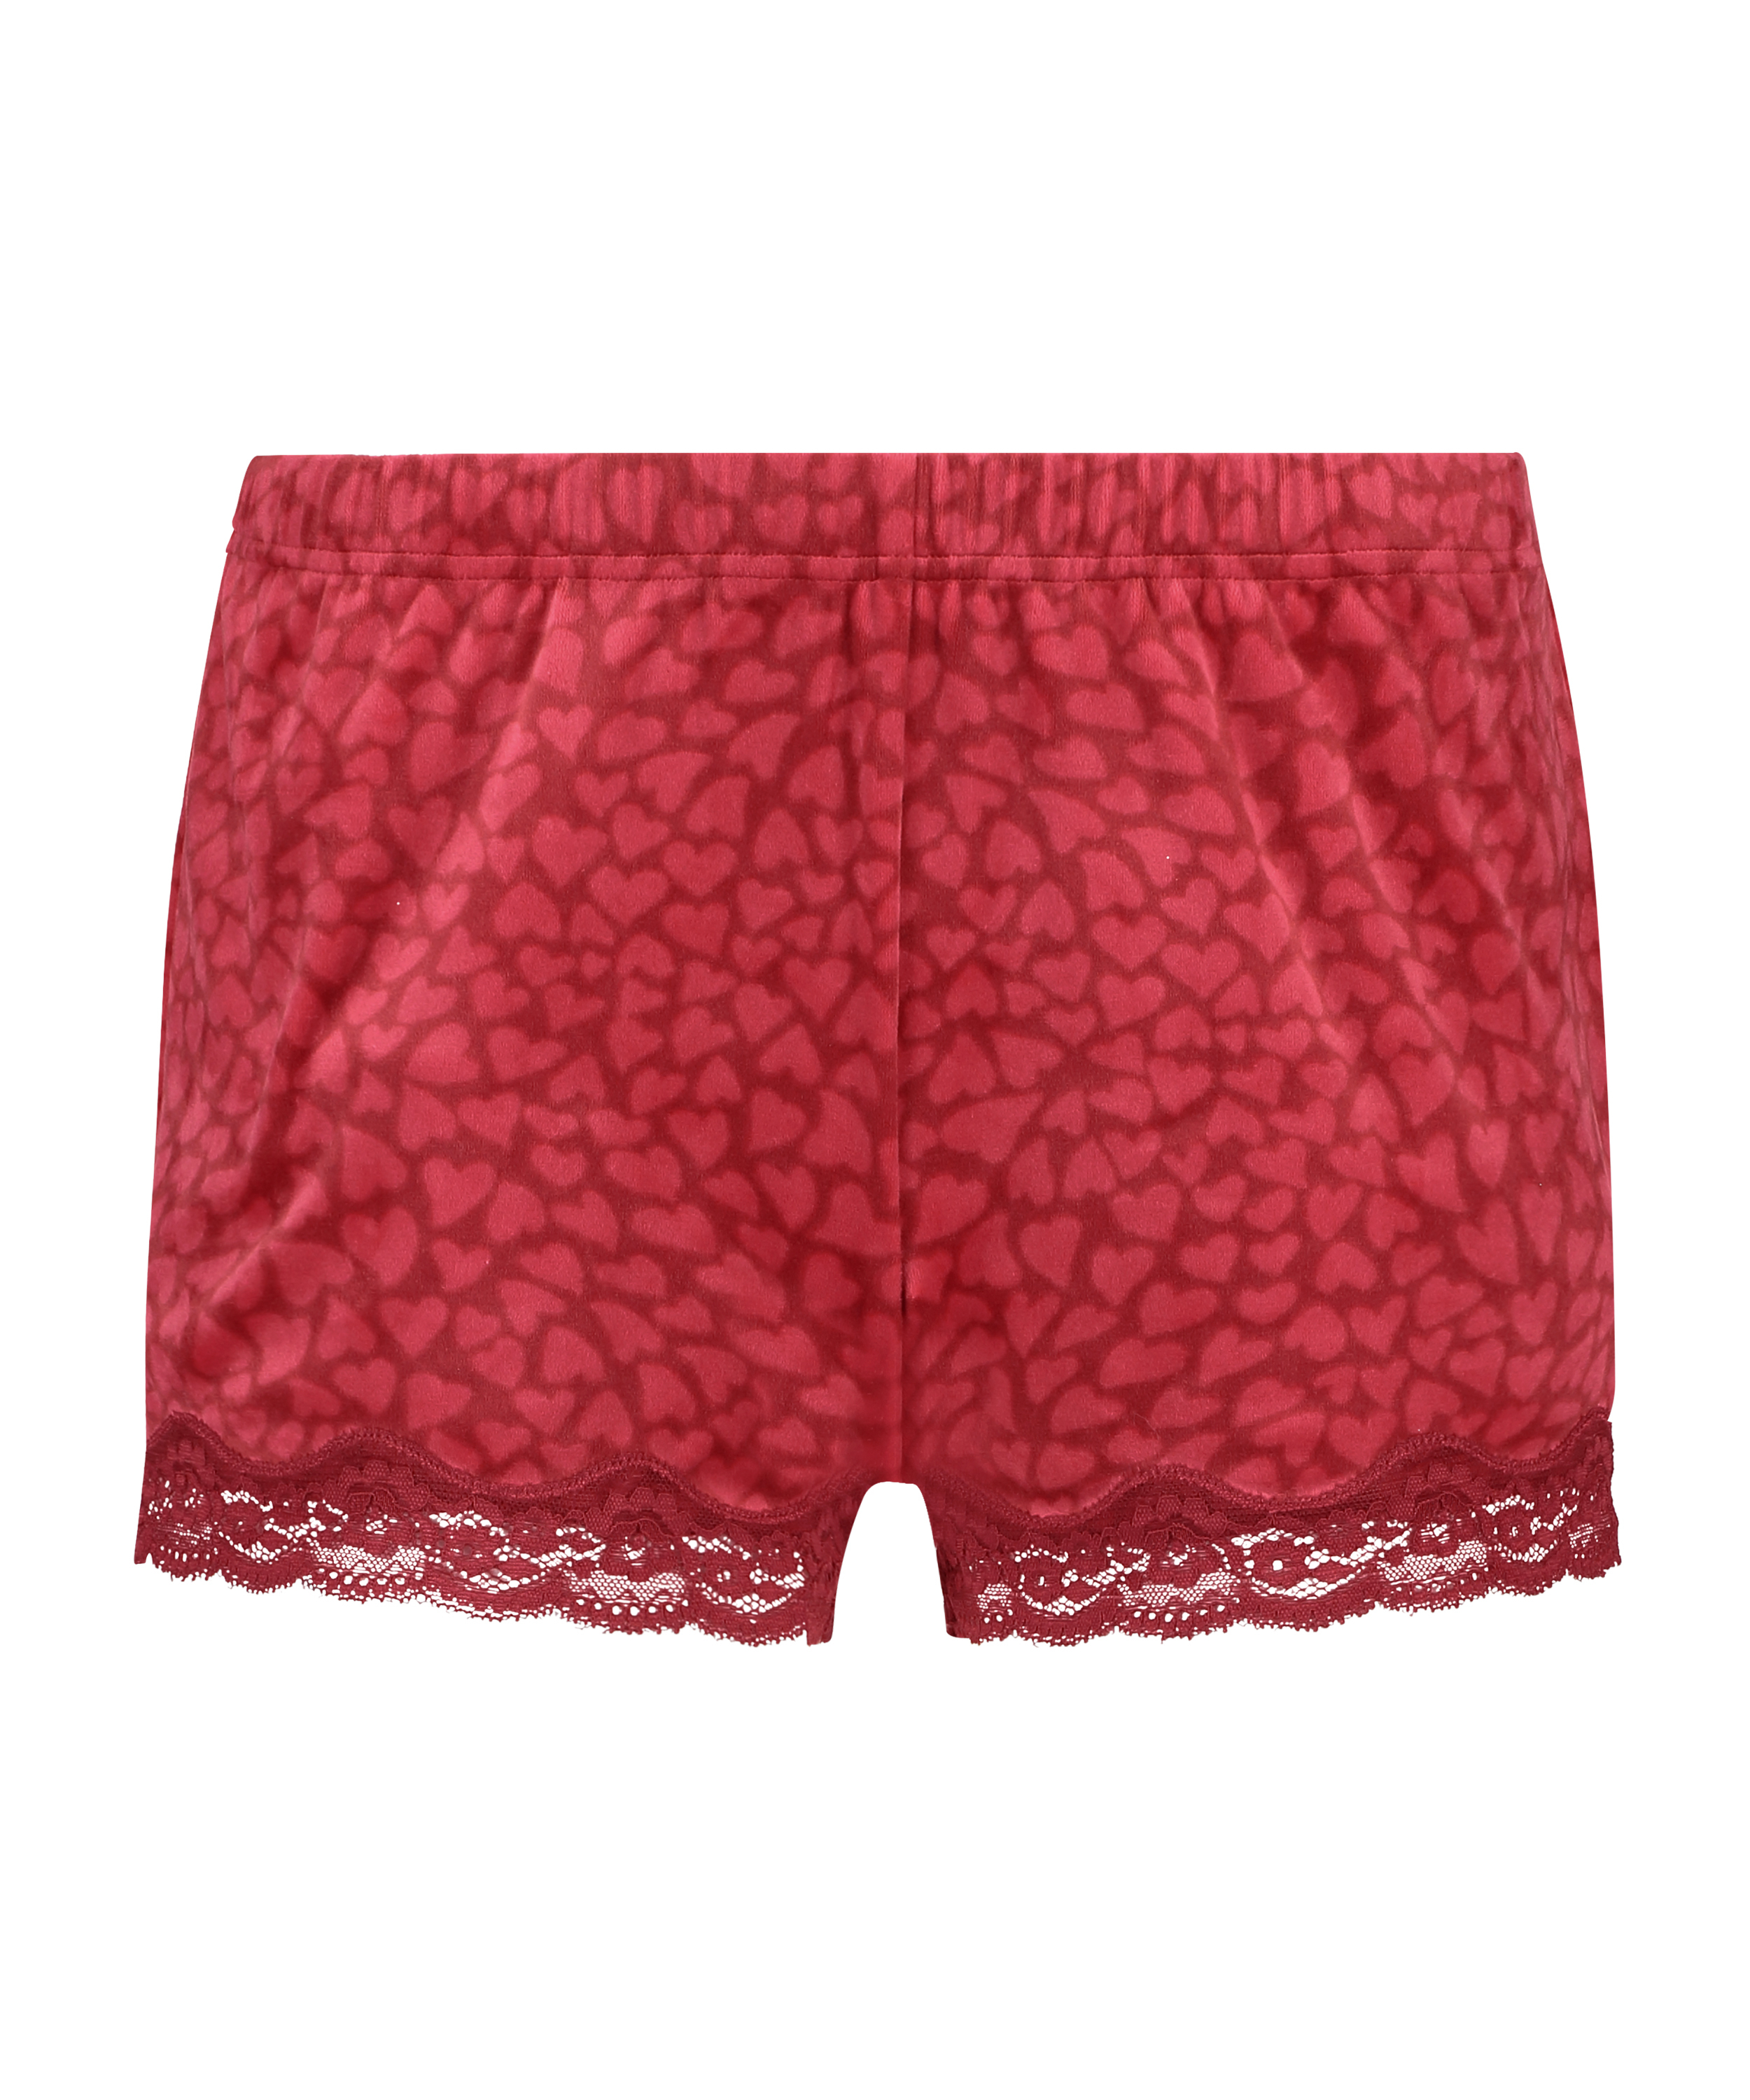 Shorts Velours Lace, Rood, main